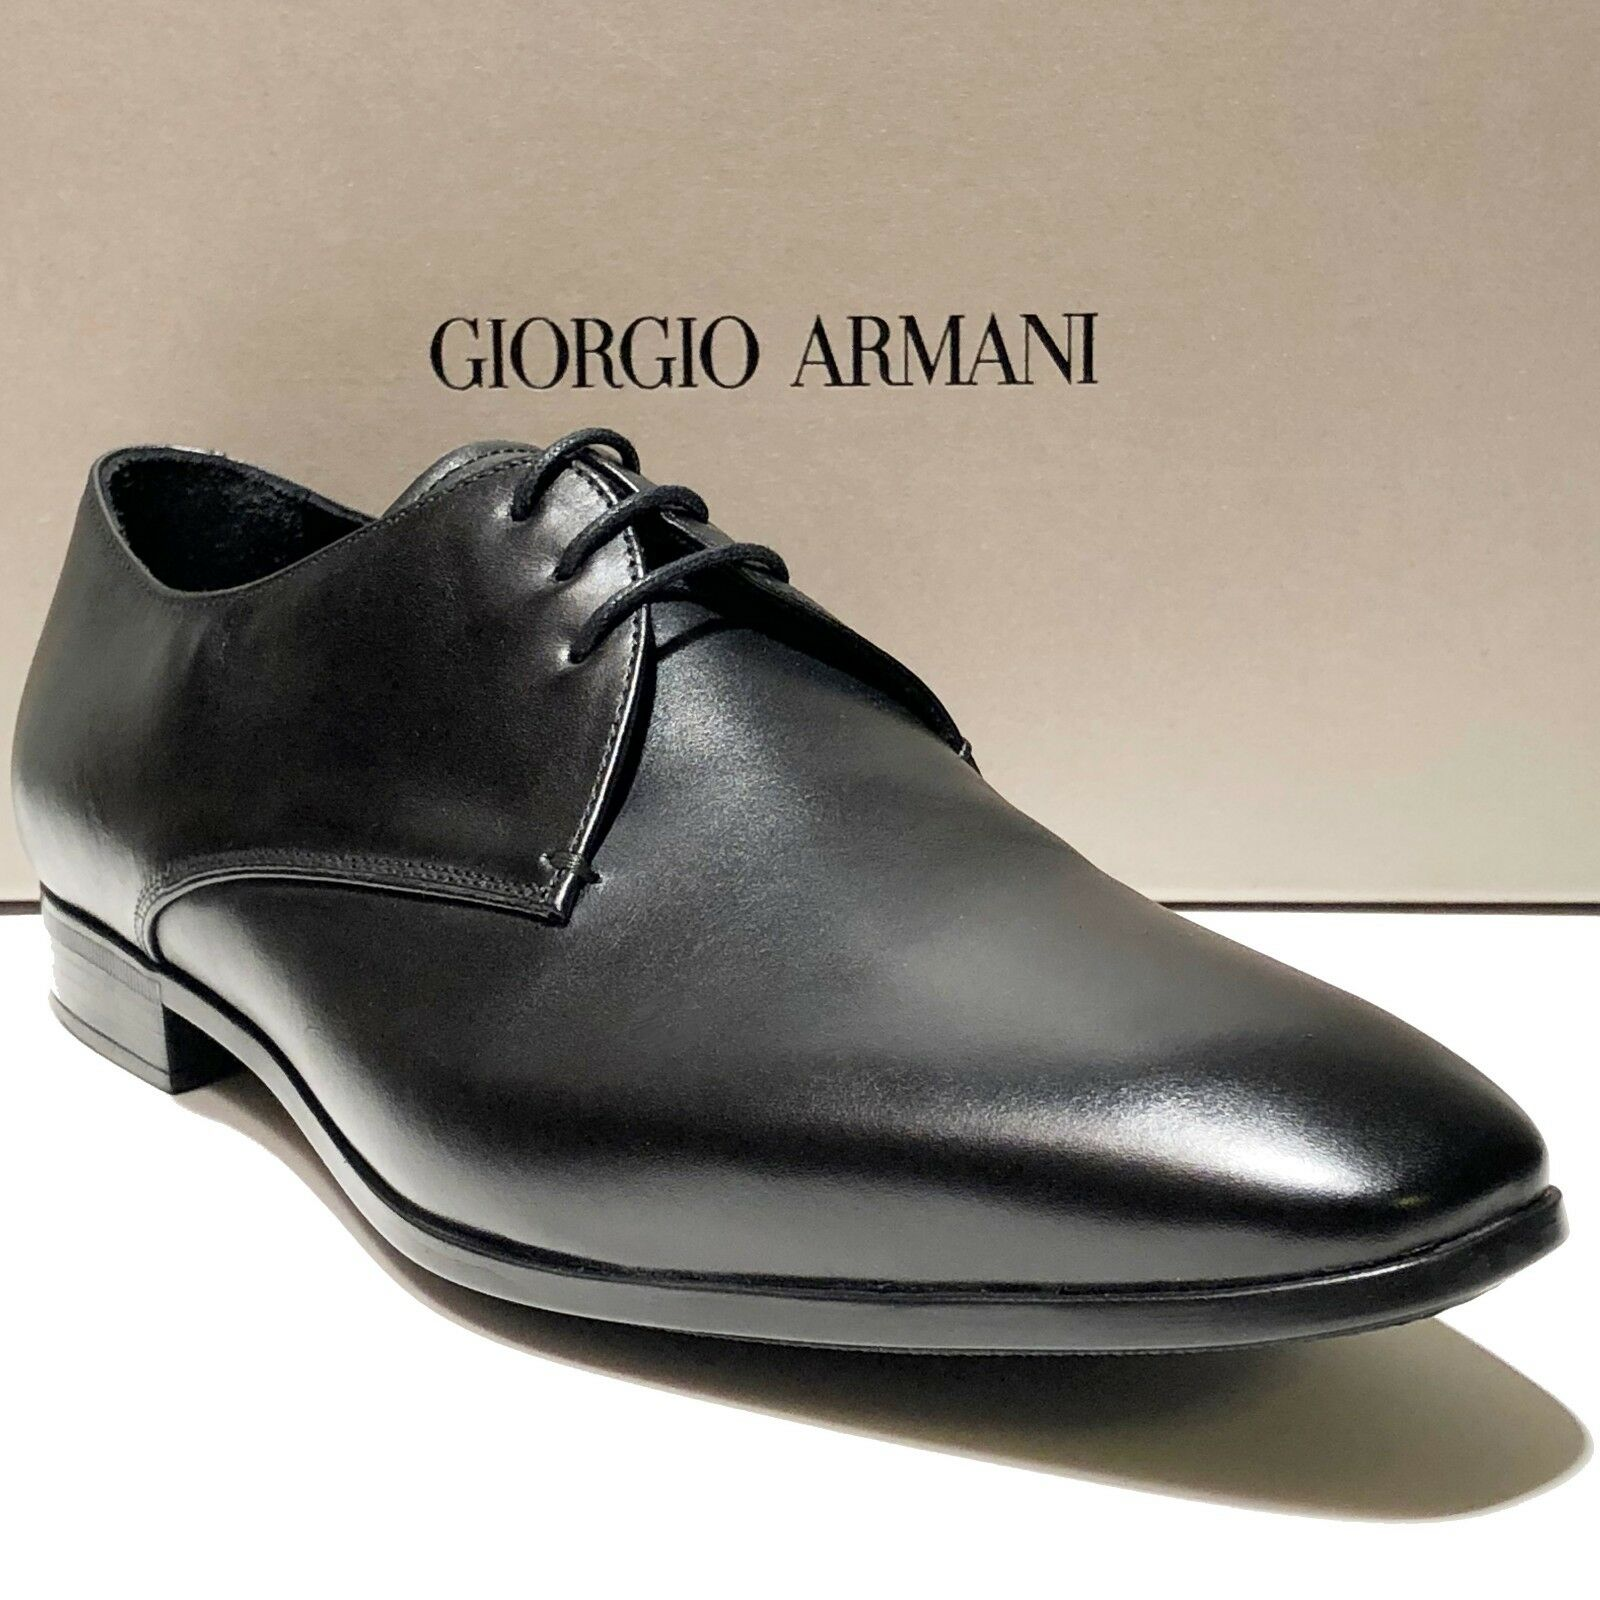 Giorgio Armani ITALY nero 9.5 Leather Formal Dress Oxford Men's scarpe Tuxedo